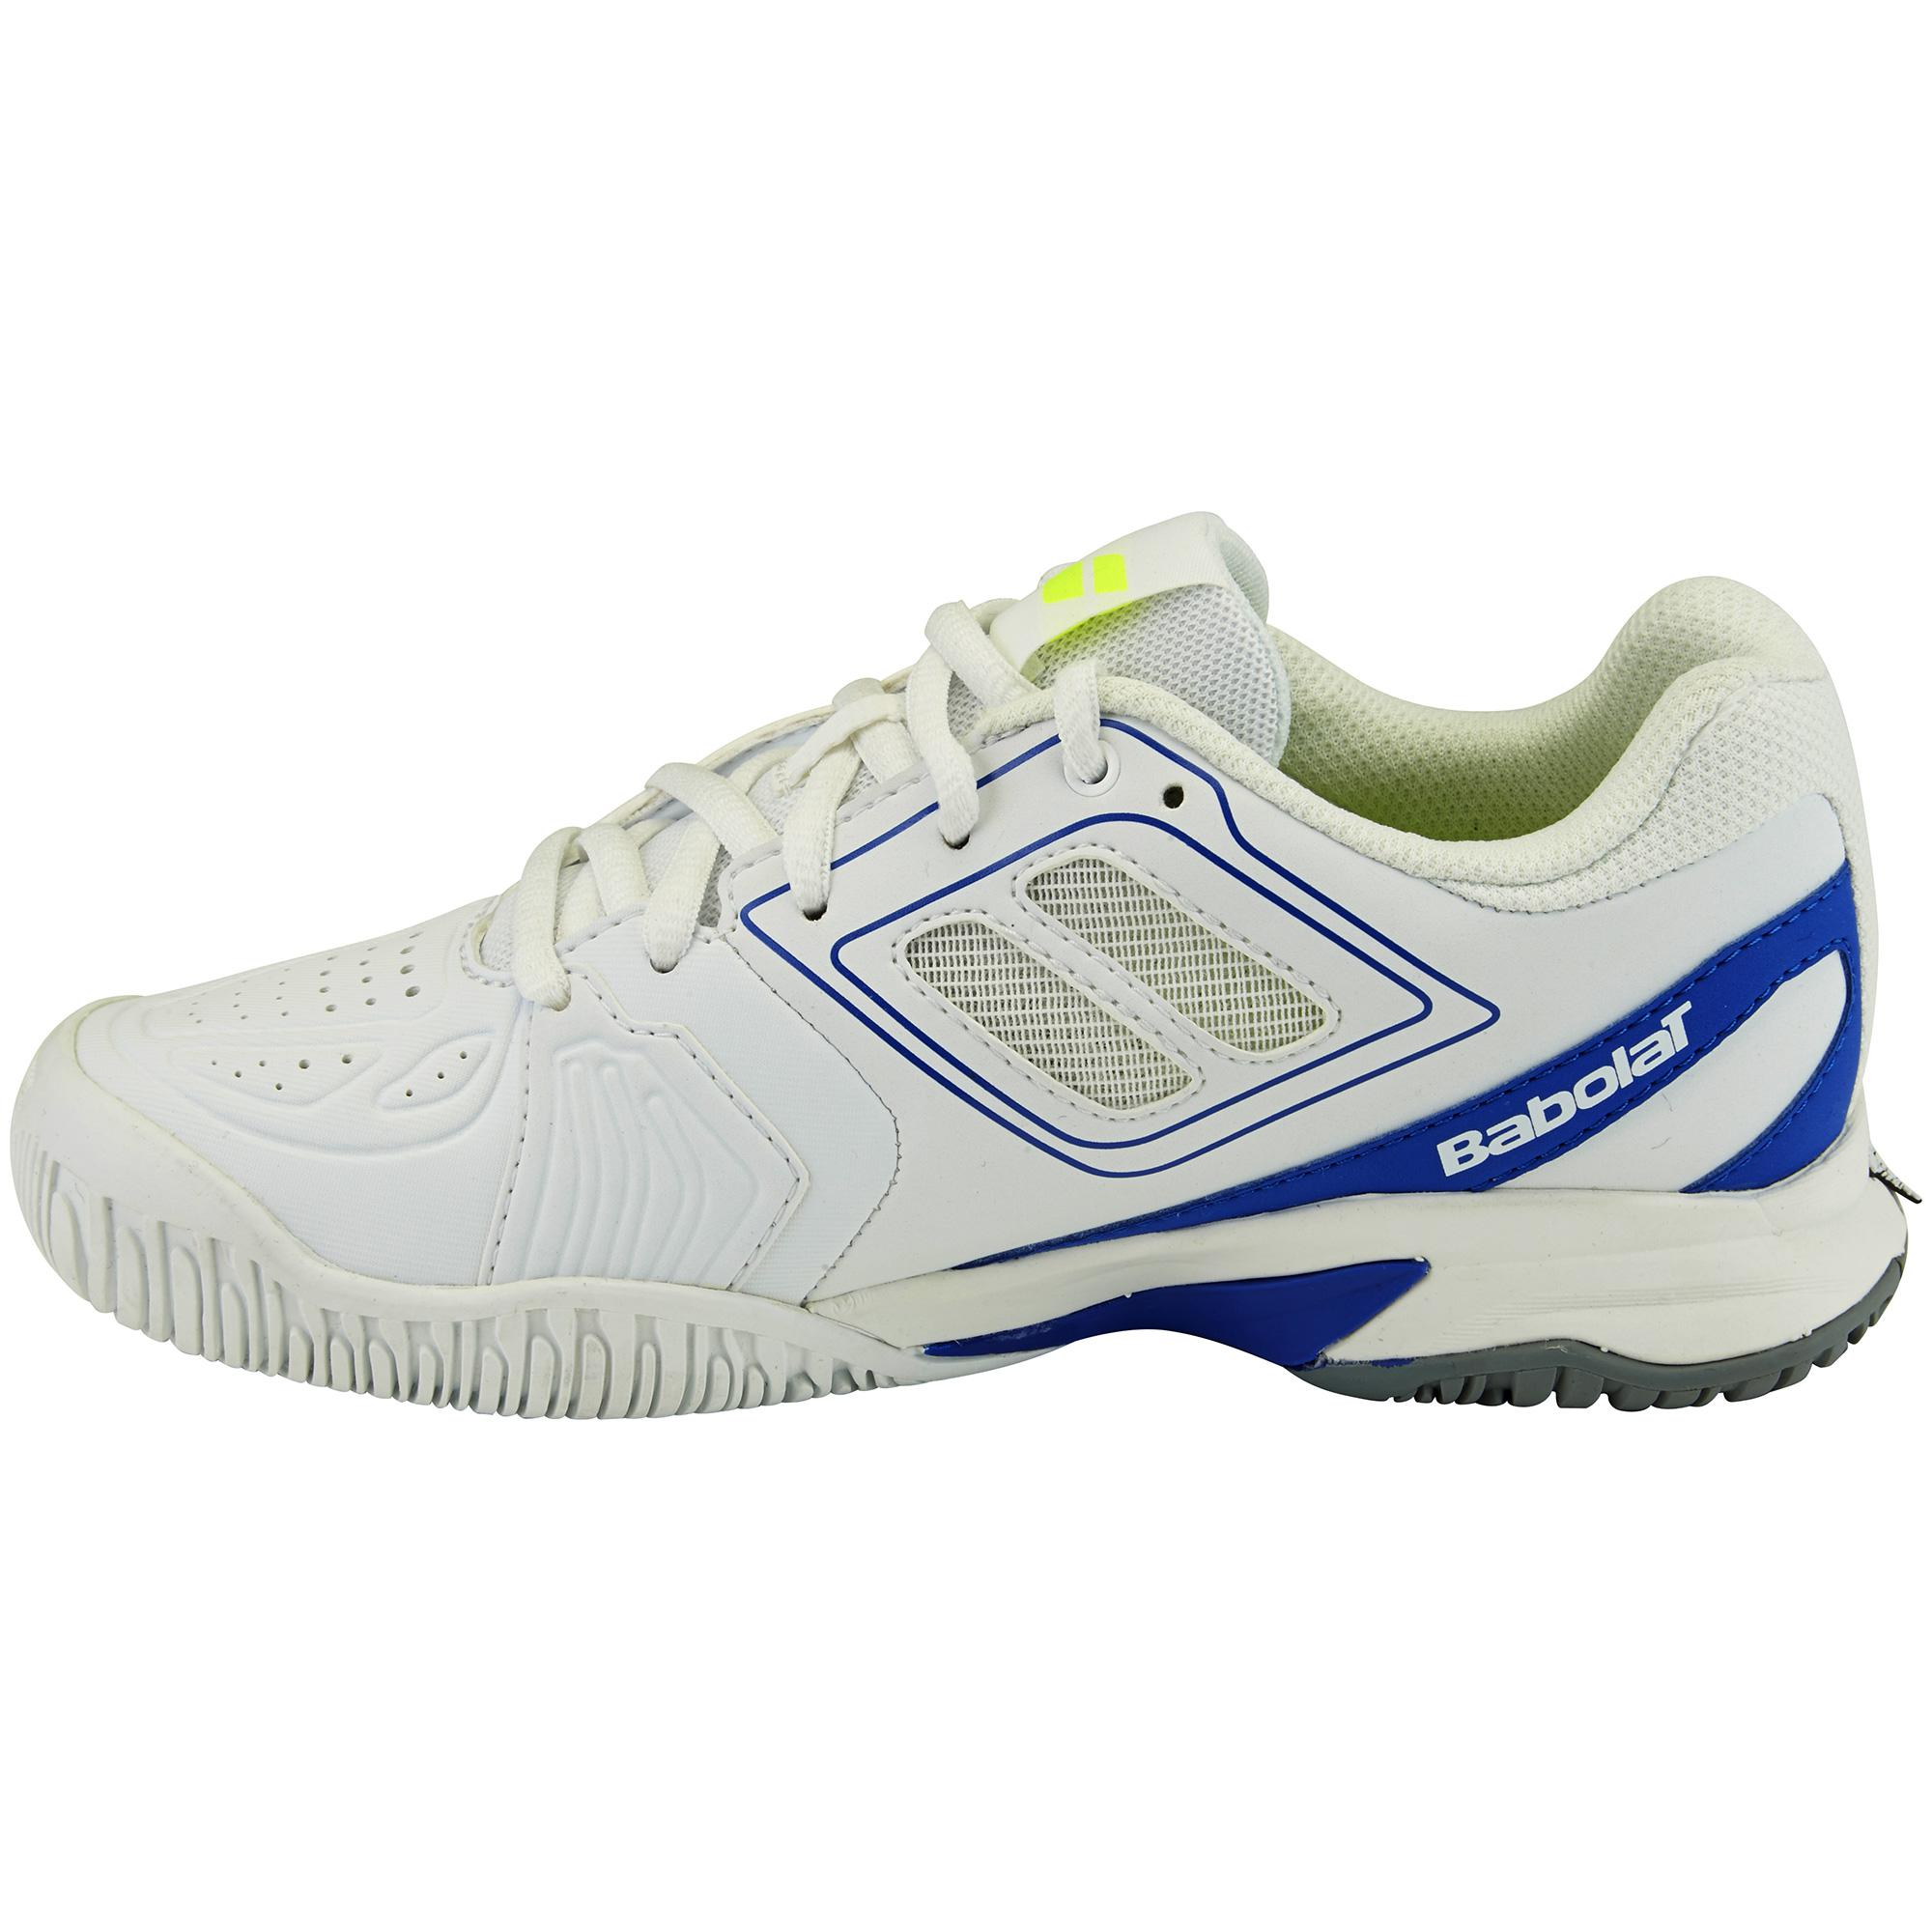 babolat propulse team all court tennis shoes white